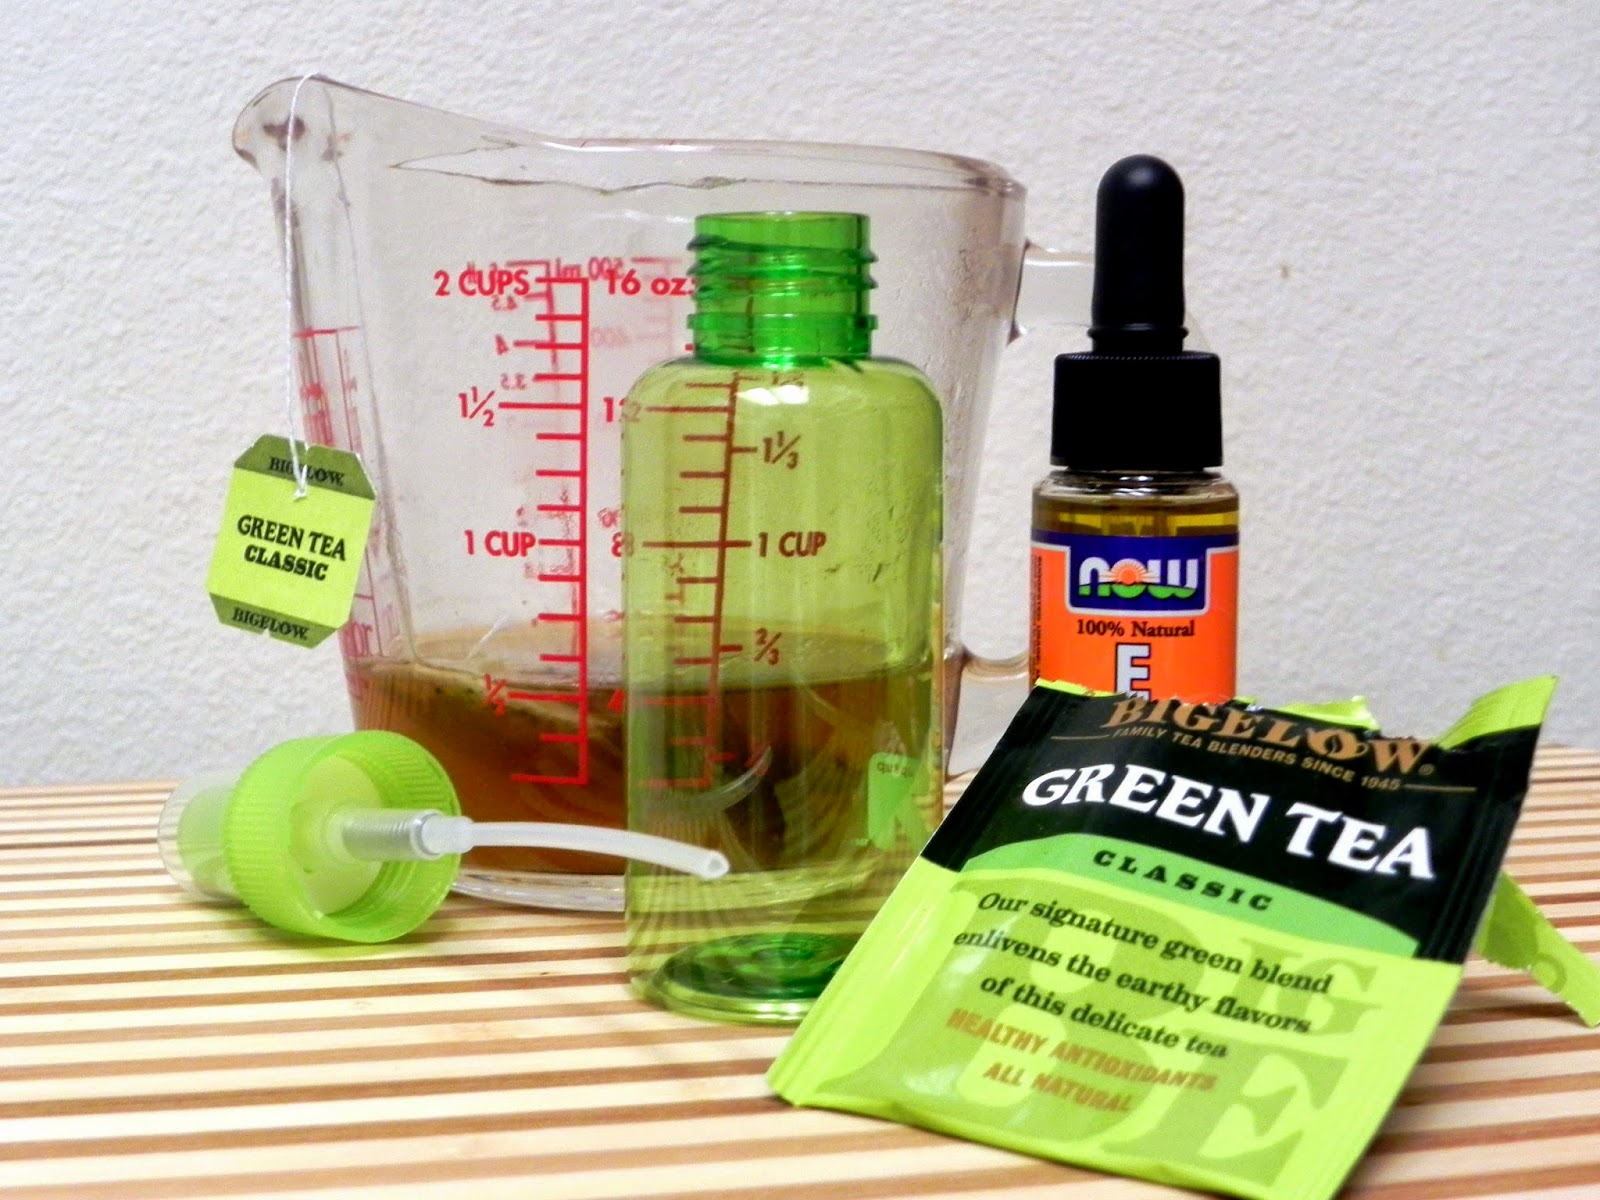 DIY Green Tea Facial Mist #shop #cbias #americastea